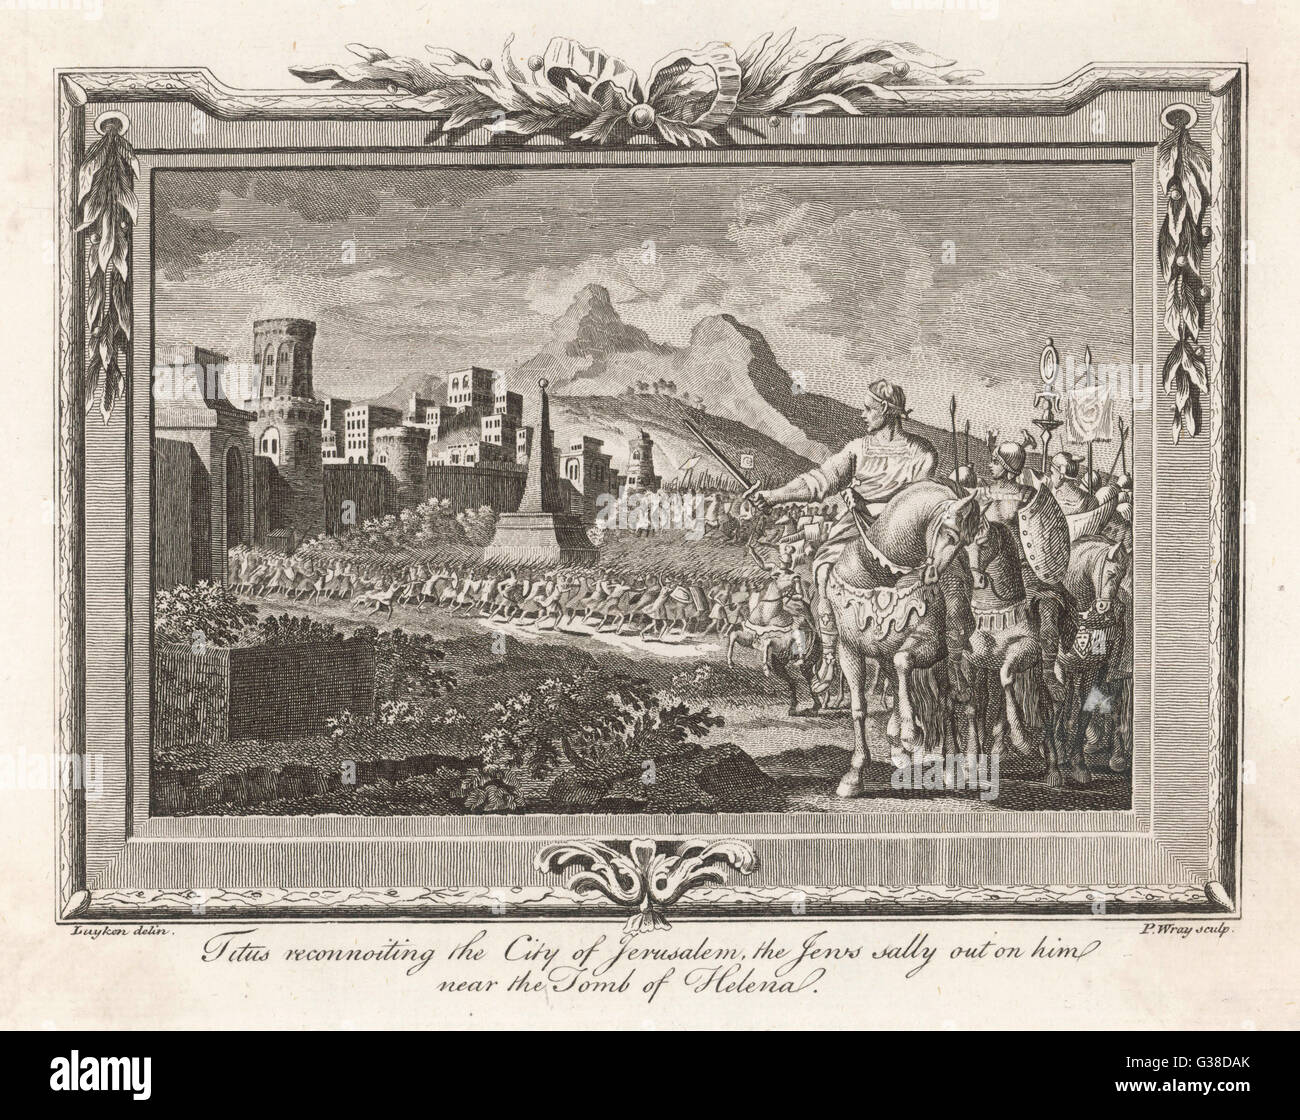 Titus at Jerusalem: the Jews,  besieged, sally out on him near  the Tomb of Helena       Date: 70 AD - Stock Image